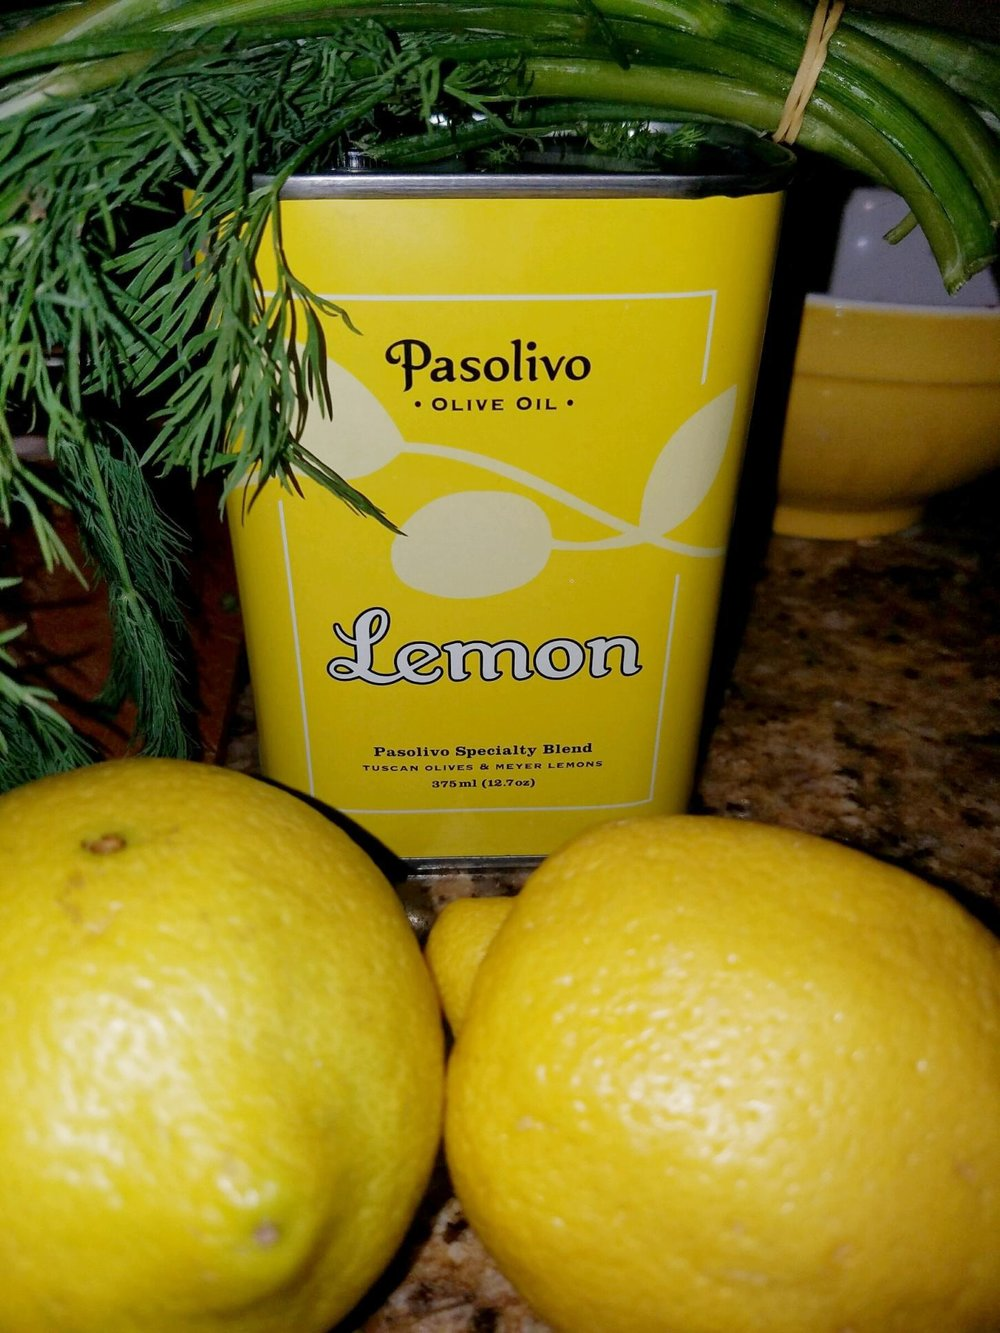 Lemon olive oil isn't necessary -- but it is delicious, especially when it's from  Pasolivo !